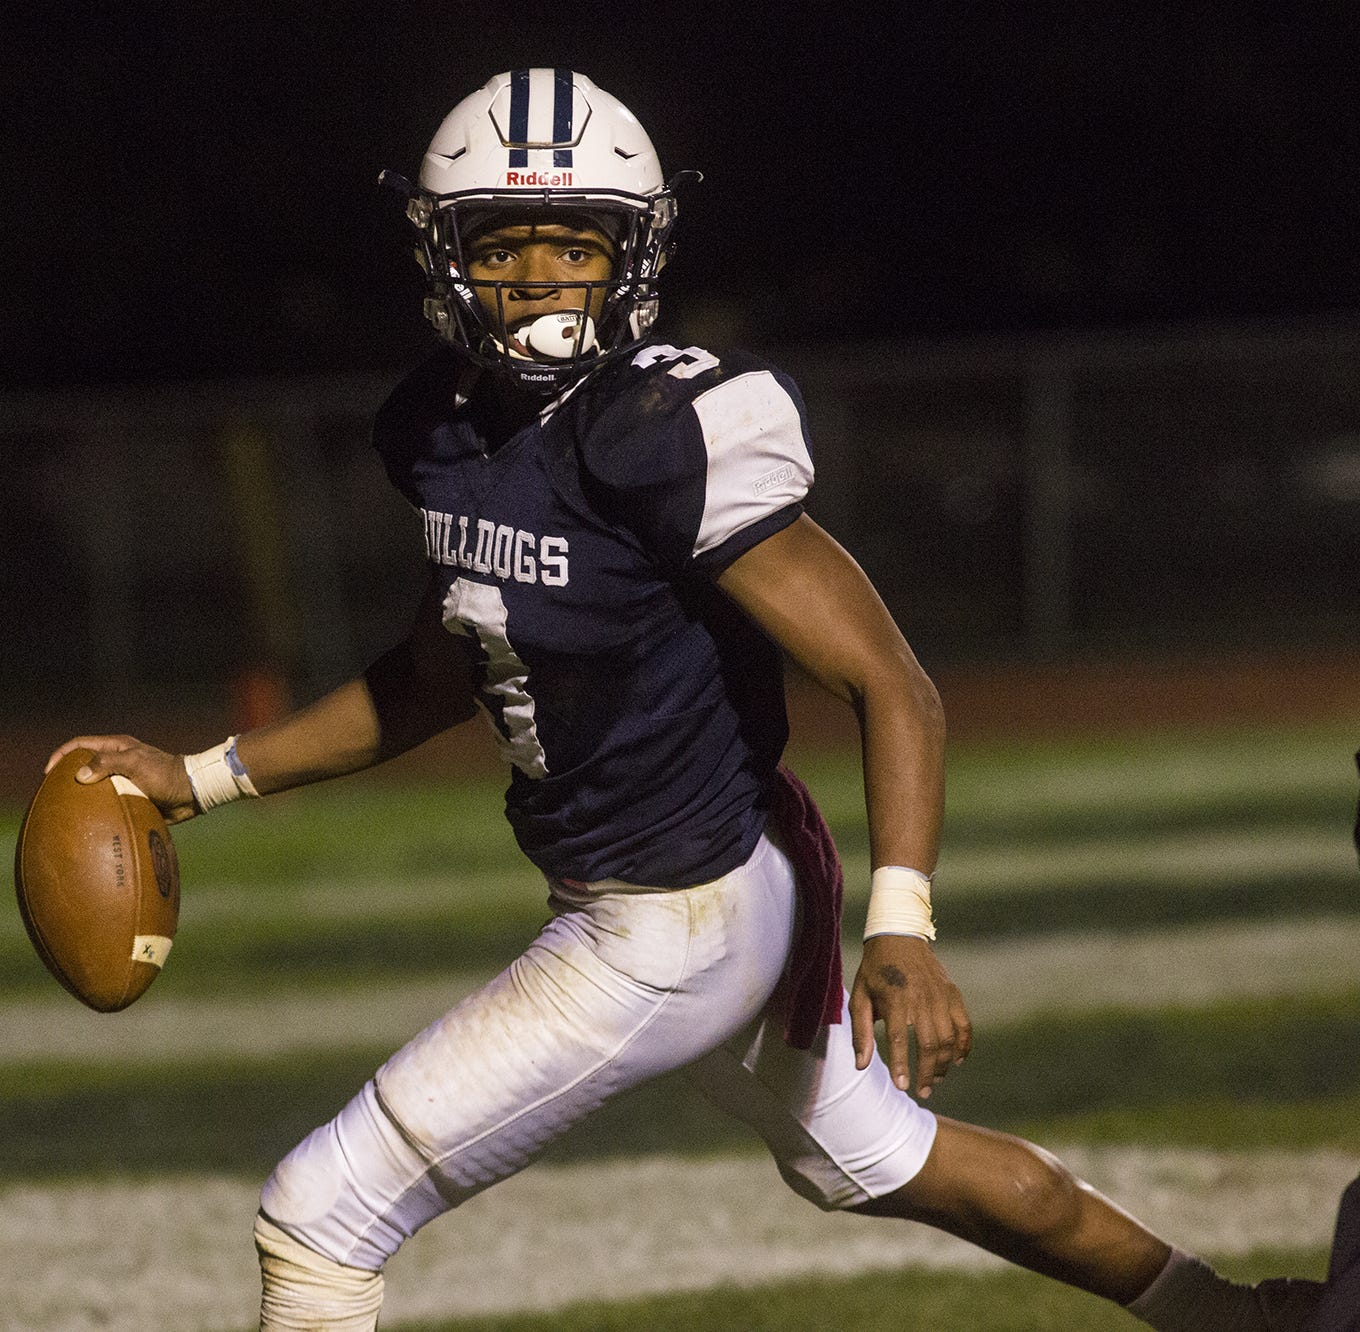 West York running back Ay'Jaun Marshall makes his college choice